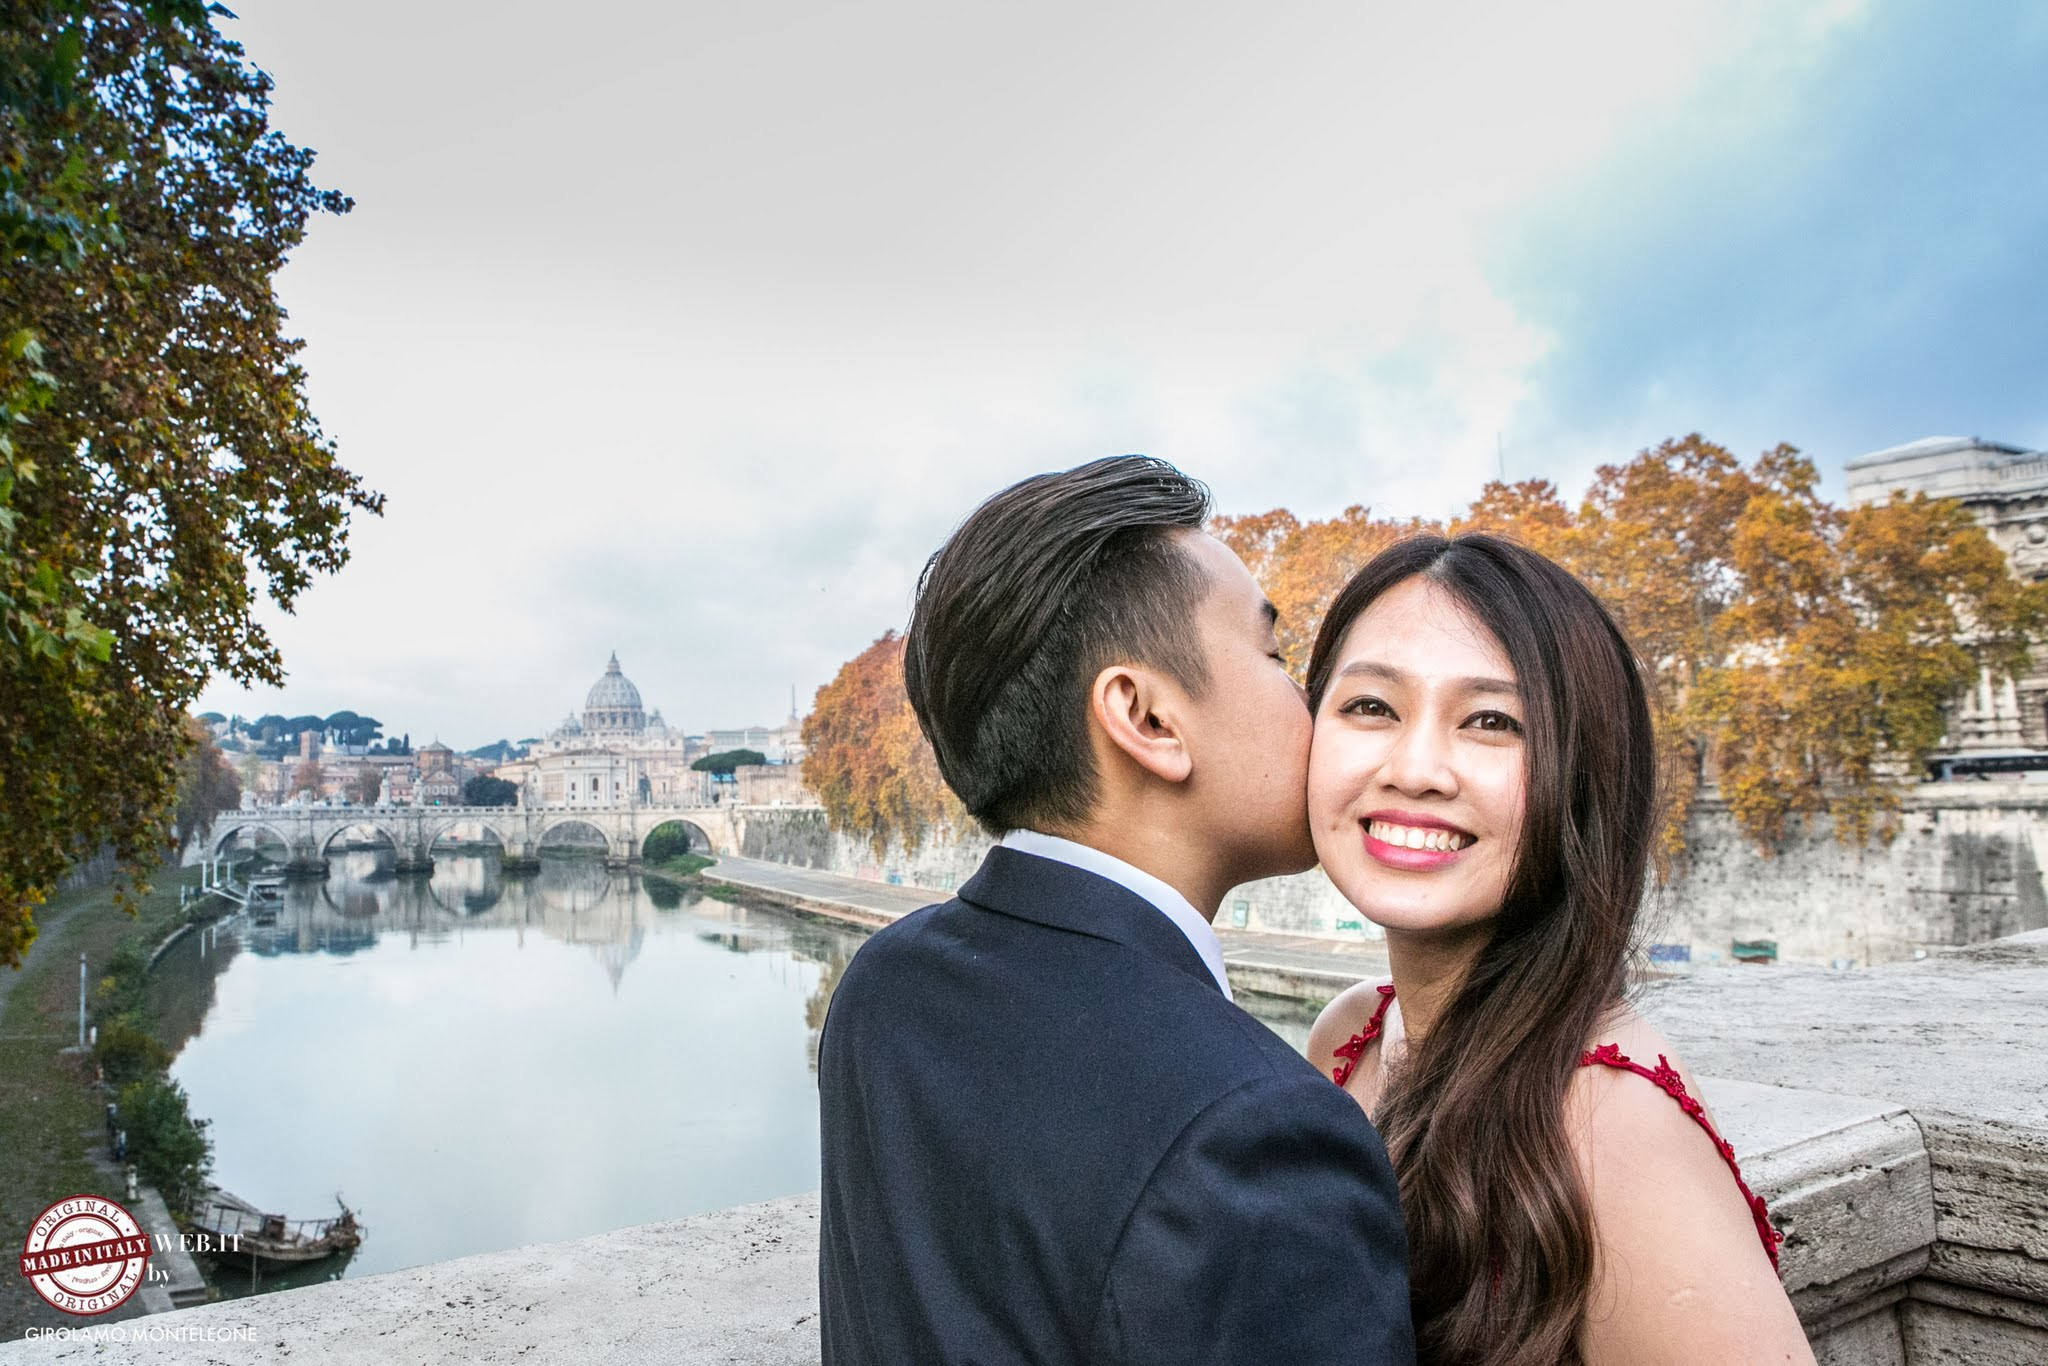 罗马_意大利_摄影师_photographer_in_rome_honeymoon__PHOTOSHOOTING_IN_ROME_ITALY_GERALD_&_JENIE_FROM_SINGAPORE_GIROLAMO_MONTELEONE_PHOTOJOURNALIST2017novembre250840411931